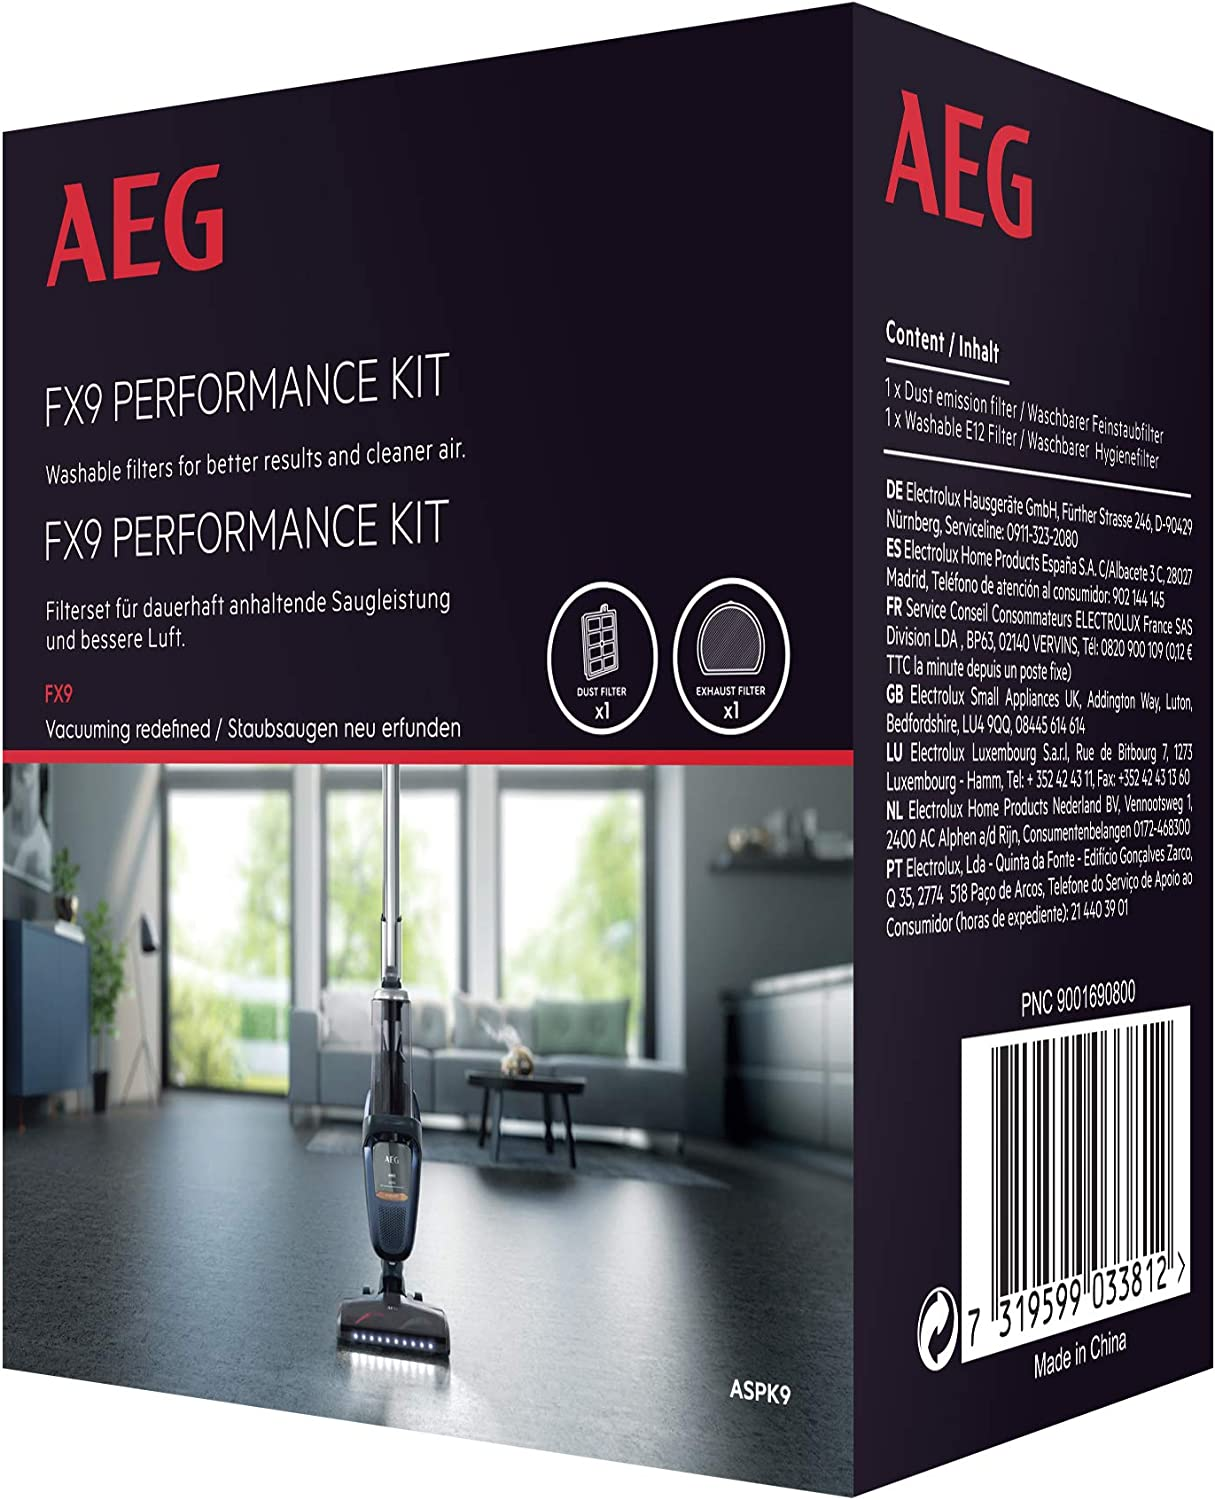 AEG ASPK9 - Pack de 2 filtros, Compatible FX9 X Ultimate: Amazon ...